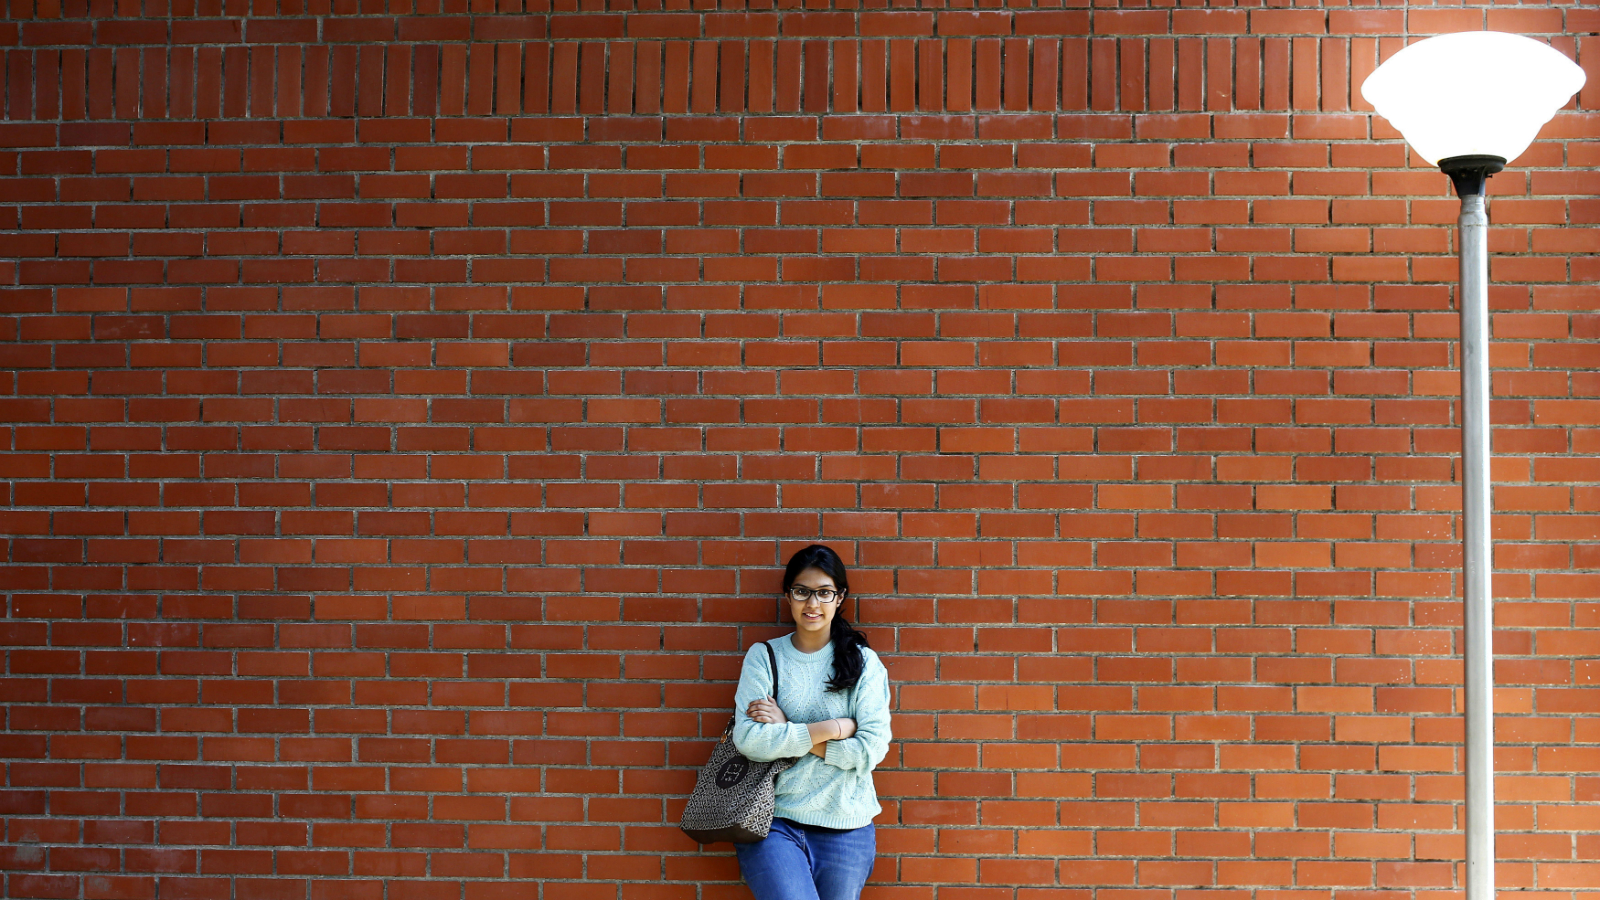 Urvashi Kapila, 19, a college student, poses for a picture at her college campus in New Delhi March 7, 2014. Urvashi, who will be voting for the first time in the upcoming general elections, said the elections will witness the largest youth participation to date and will herald a new kind of politics which she hopes would be a more transparent government. She is among more than 100 million registered new voters, who will cast their ballots when the world's biggest democracy holds a general election that will run from April 7 to May 12.